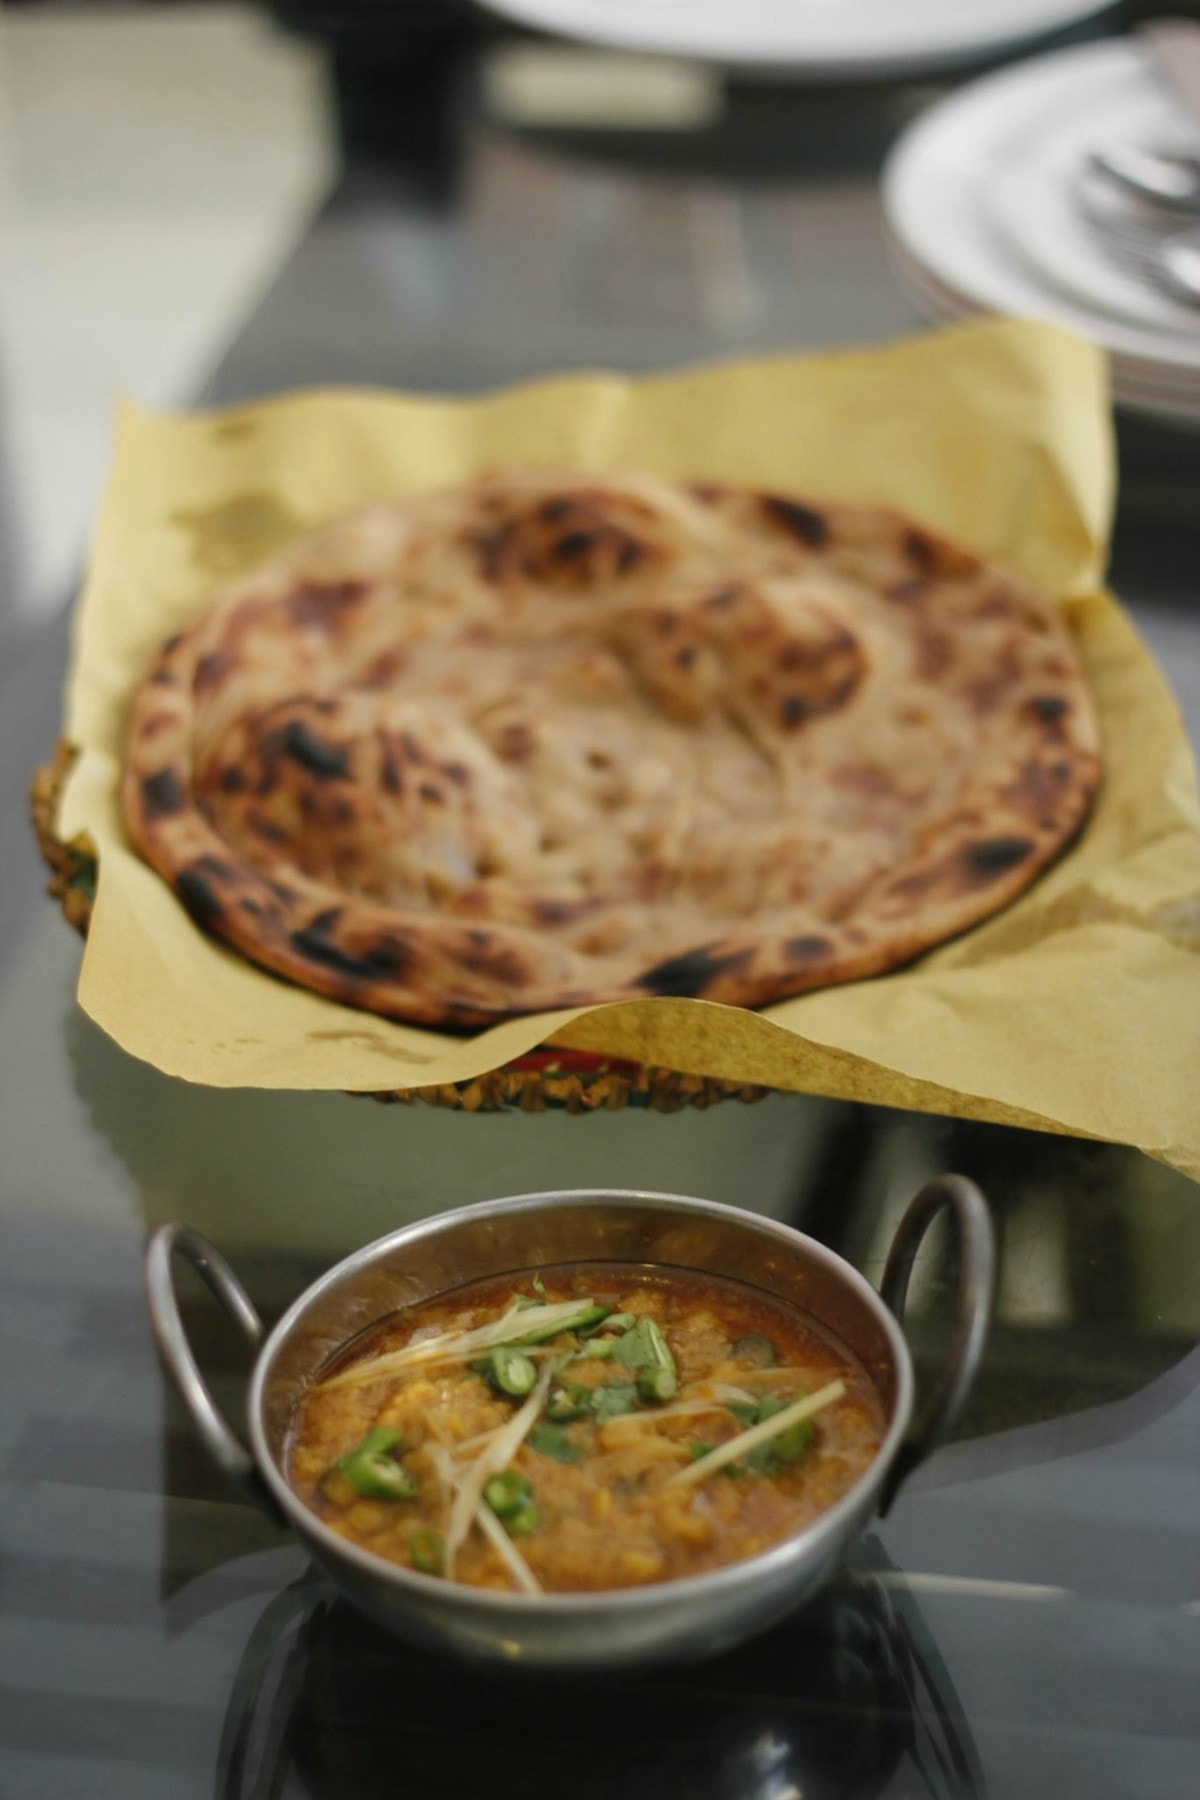 CnC's parathas are served with daal enriched with desi ghee